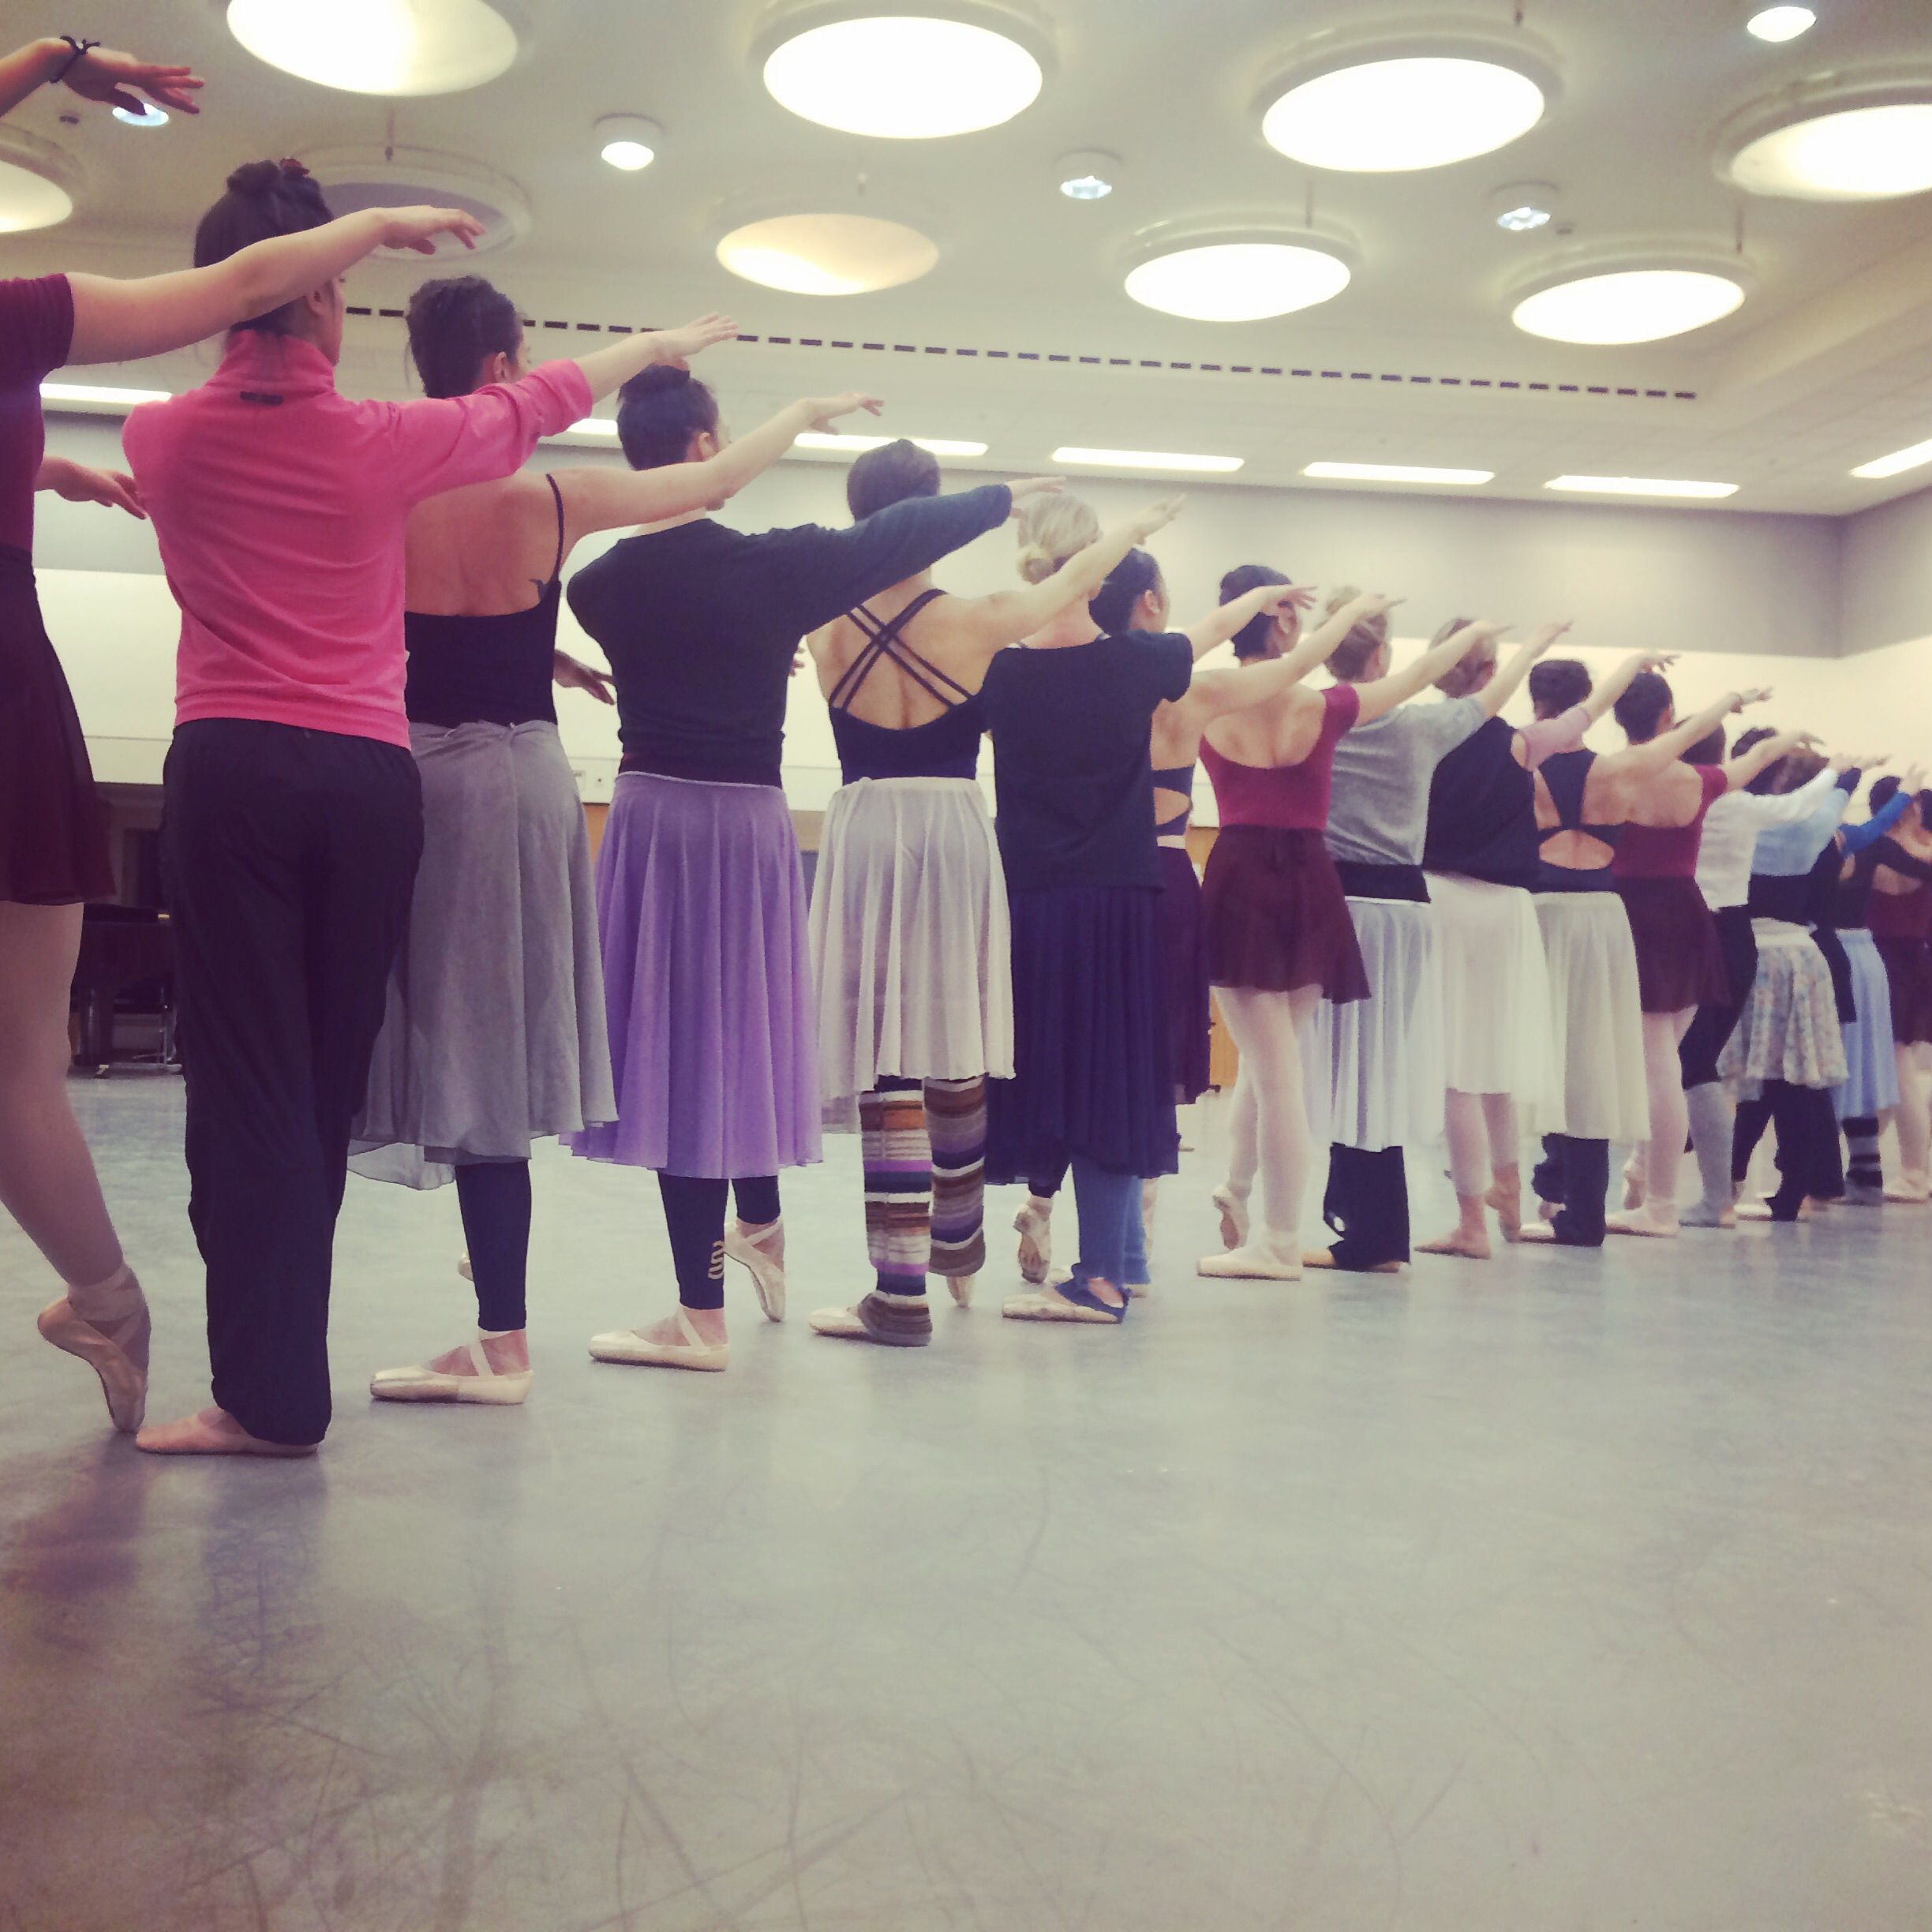 LADIES ROCKING THEIR SKIRTS IN A REHERSAL OF ACT 2 'GISELLE'.